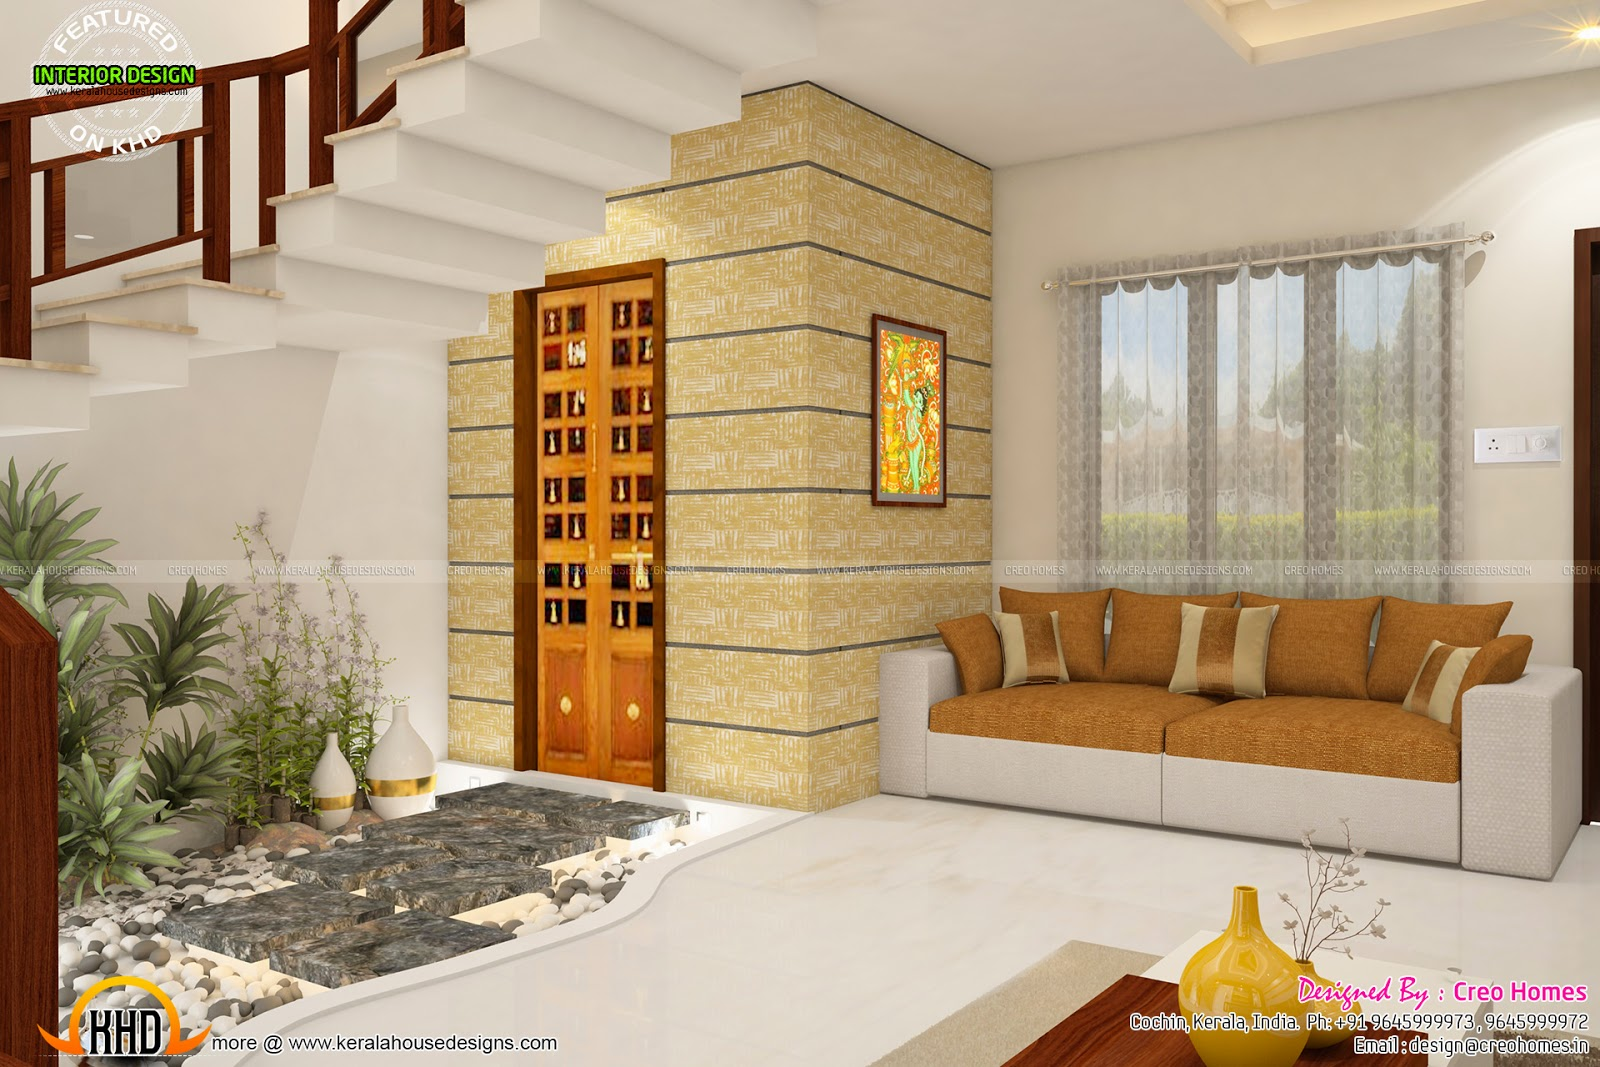 Total home interior solutions by creo homes kerala home for House and home interior design